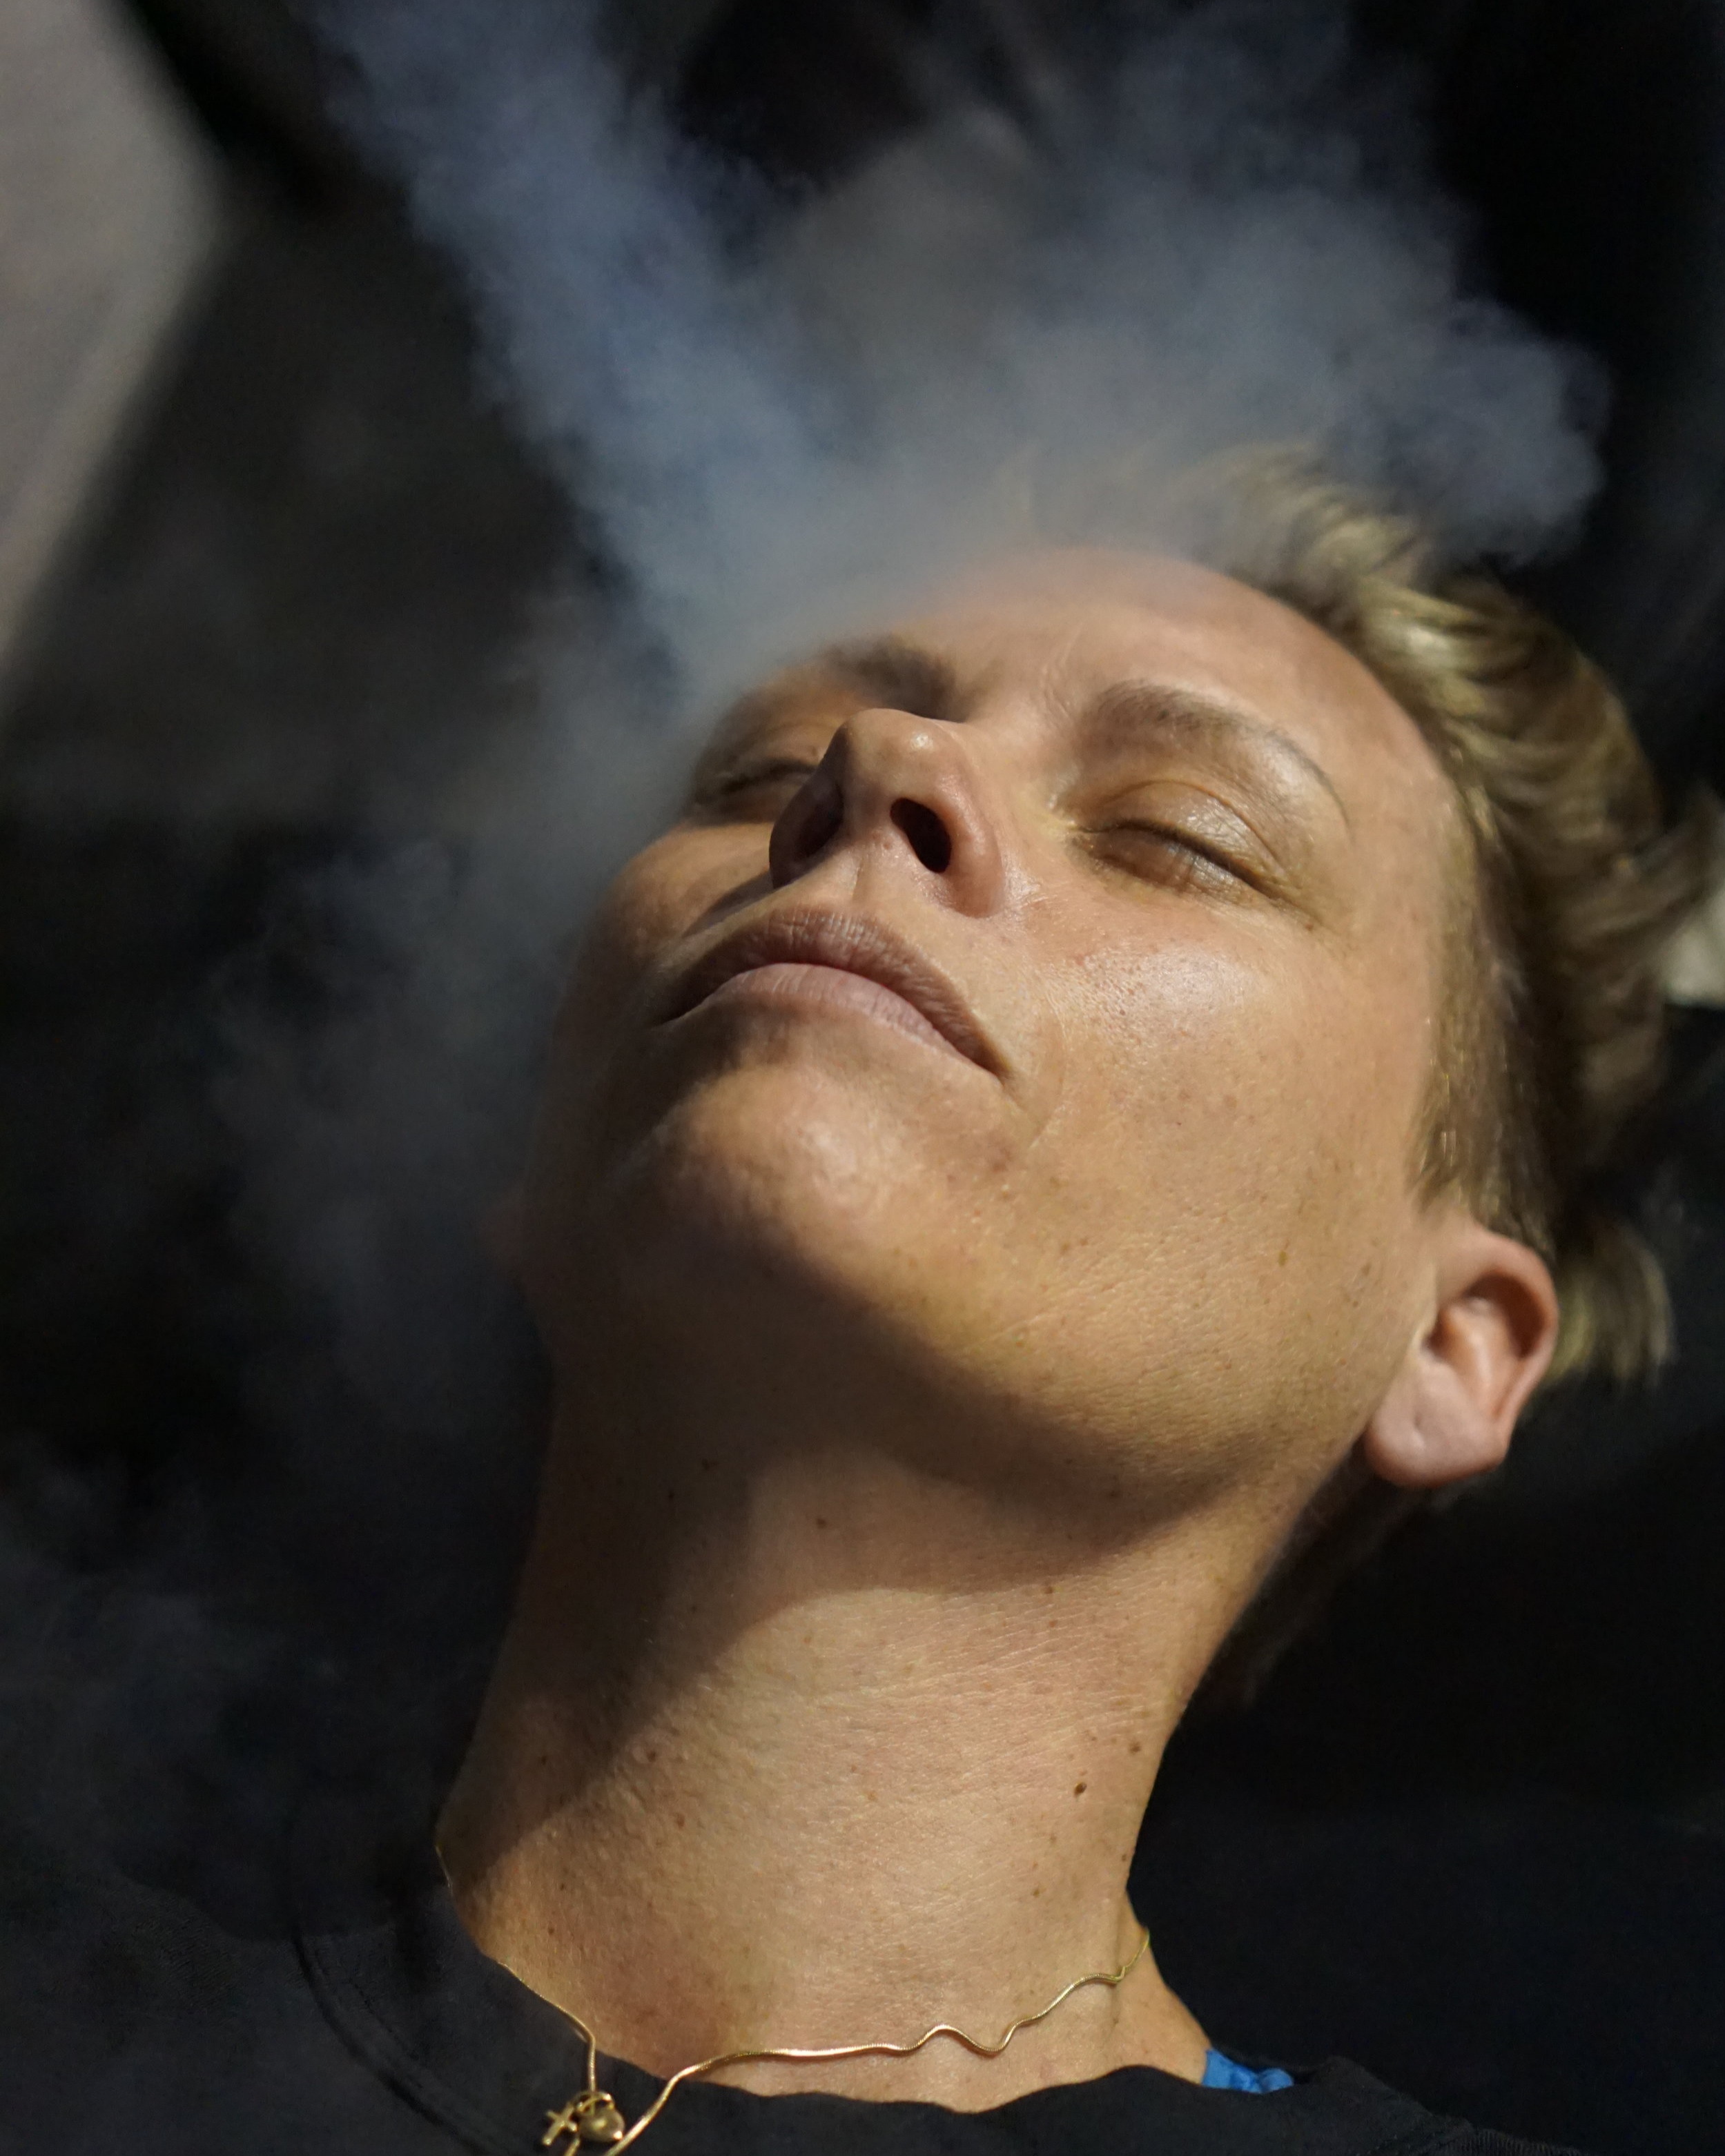 Cryotherapy Facial (Frotox) - Our CryoTHERAPY Facials are a non-invasive and pain free treatment method. Liquid nitrogen vapors are gently blown onto your face and neck area. This will stimulate the production of collagen and decrease pore size. Other benefits over time may include tightening skin, improving skin tone, brightening dark spots, decreasing wrinkles and lines as well as helpING treat acne.